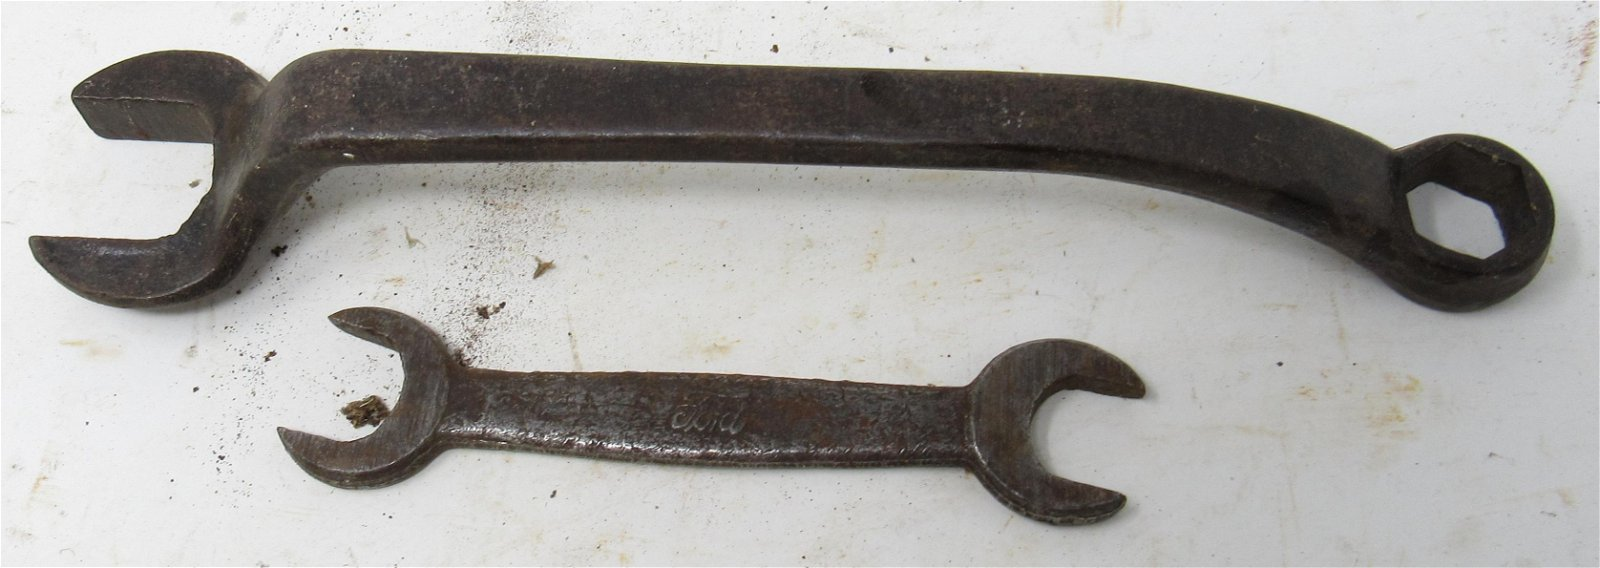 Antique Ford Wrench